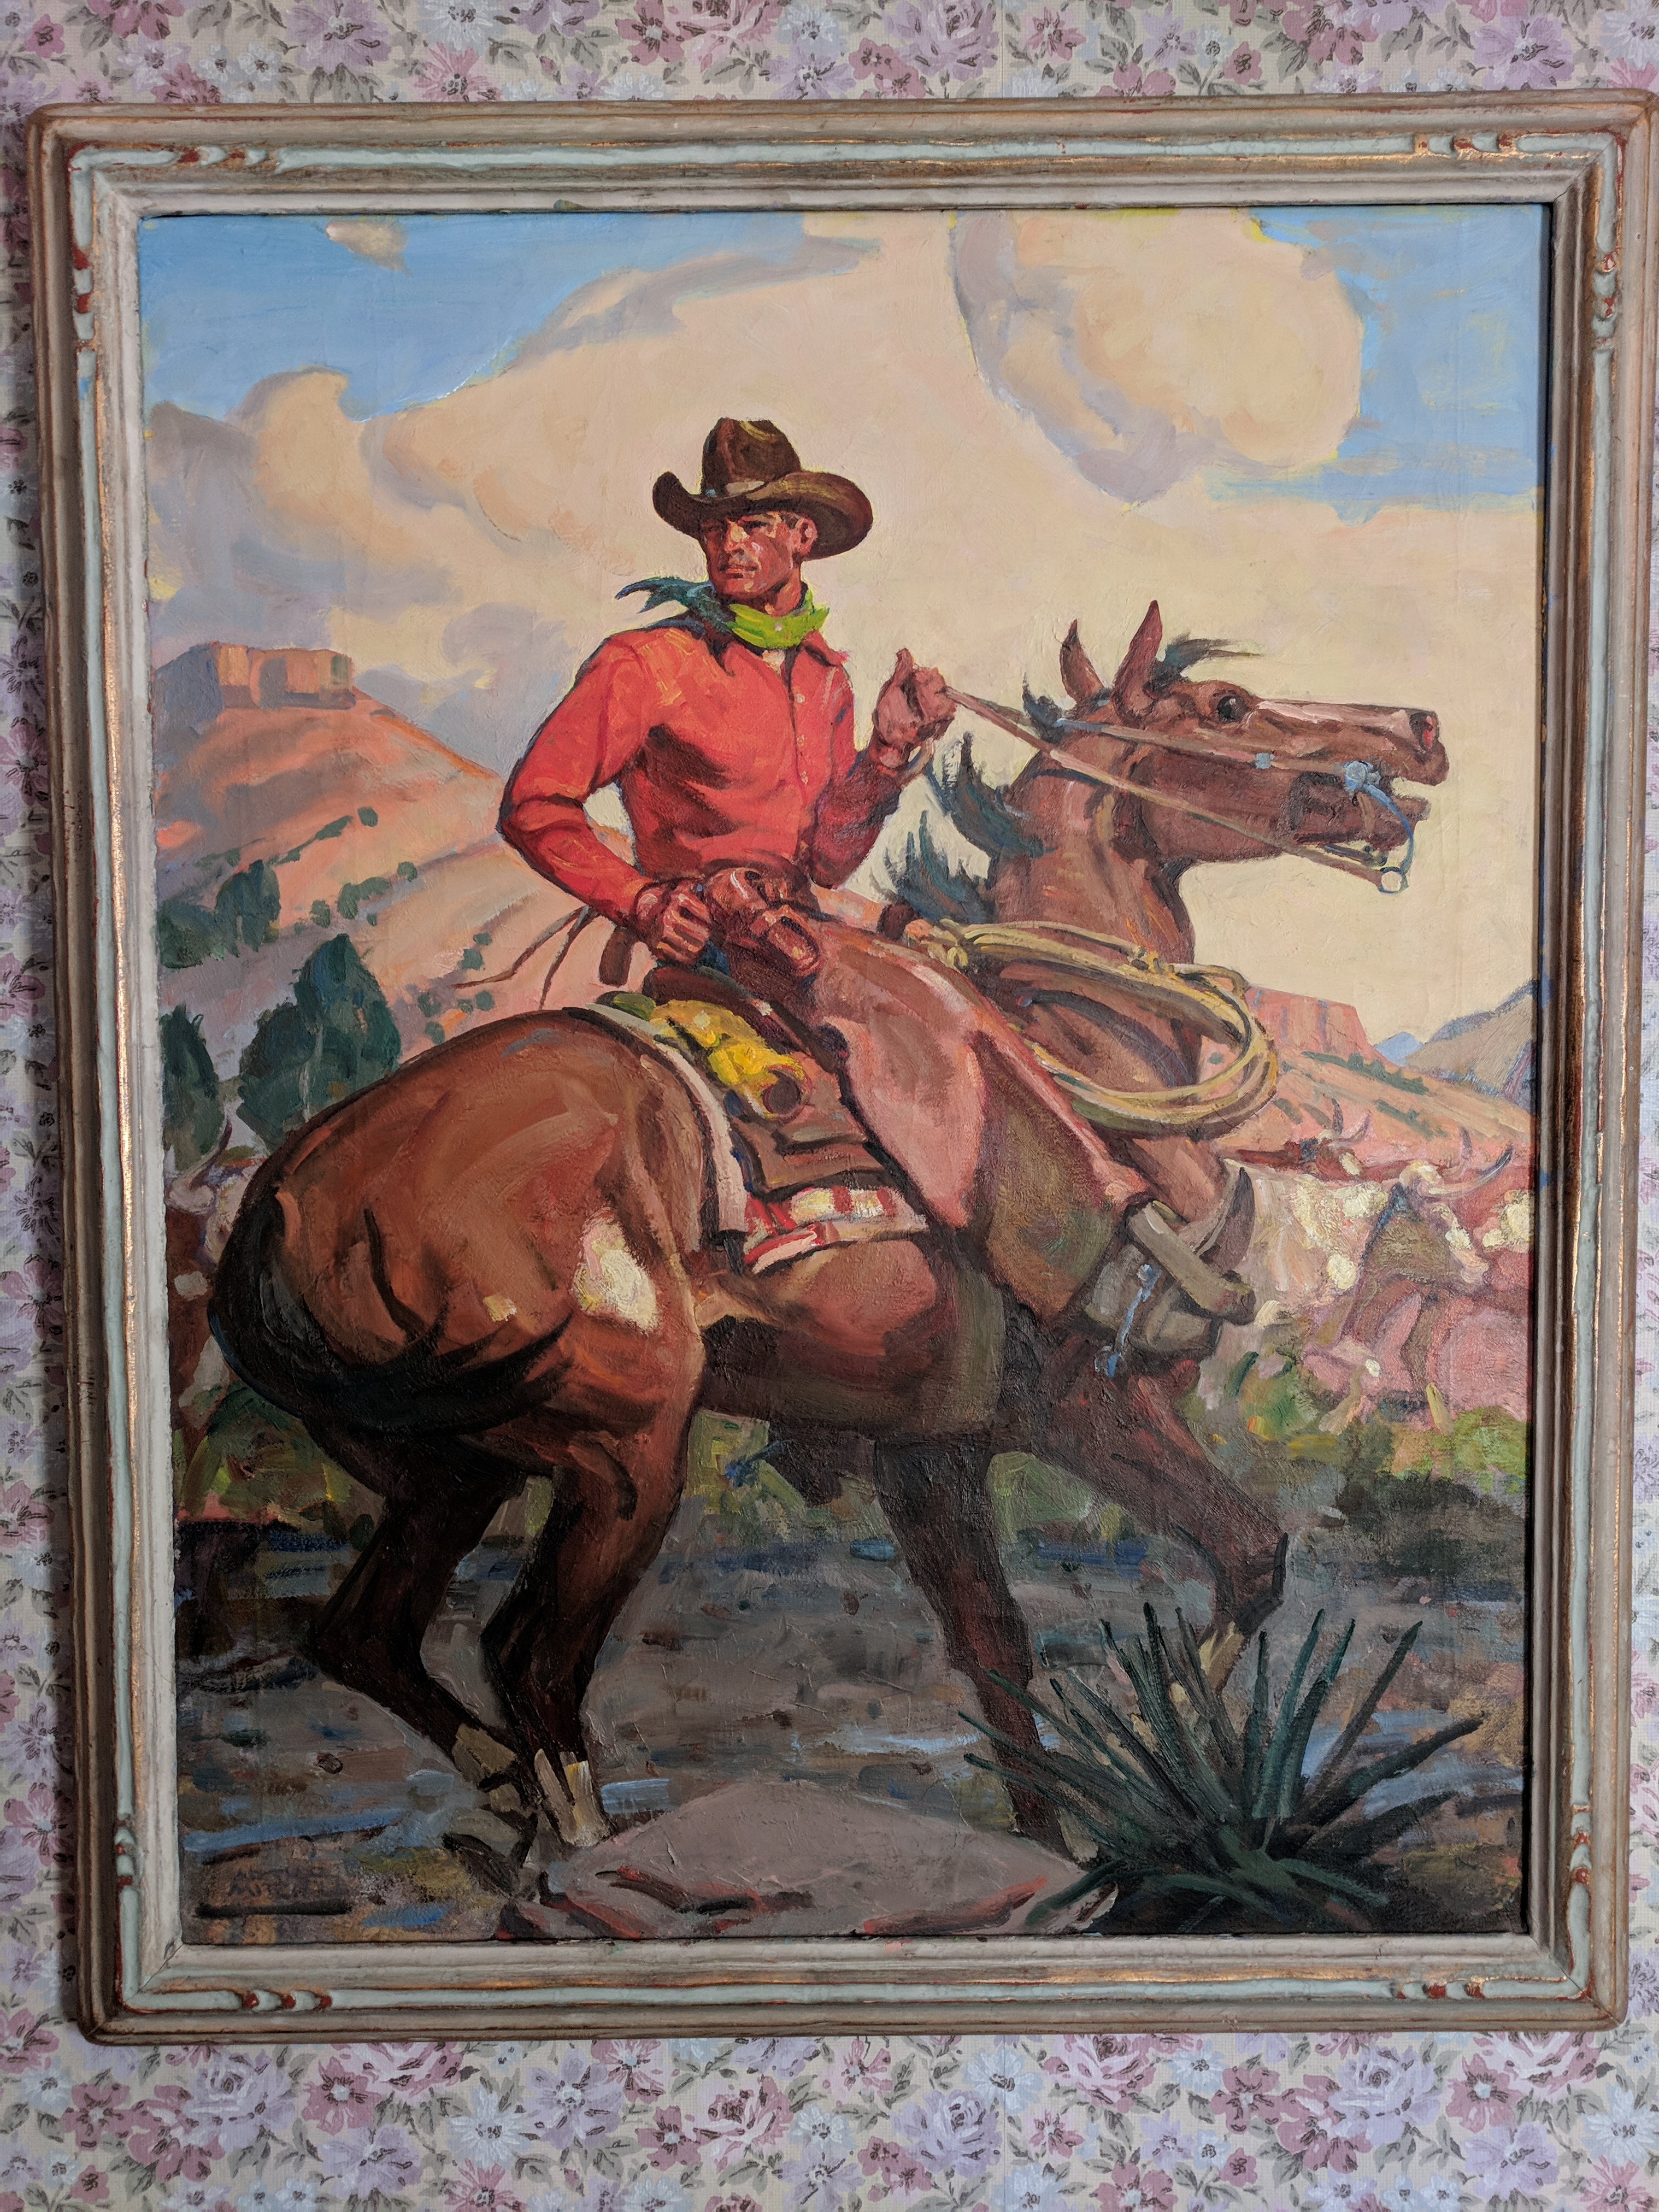 painting of man riding horse